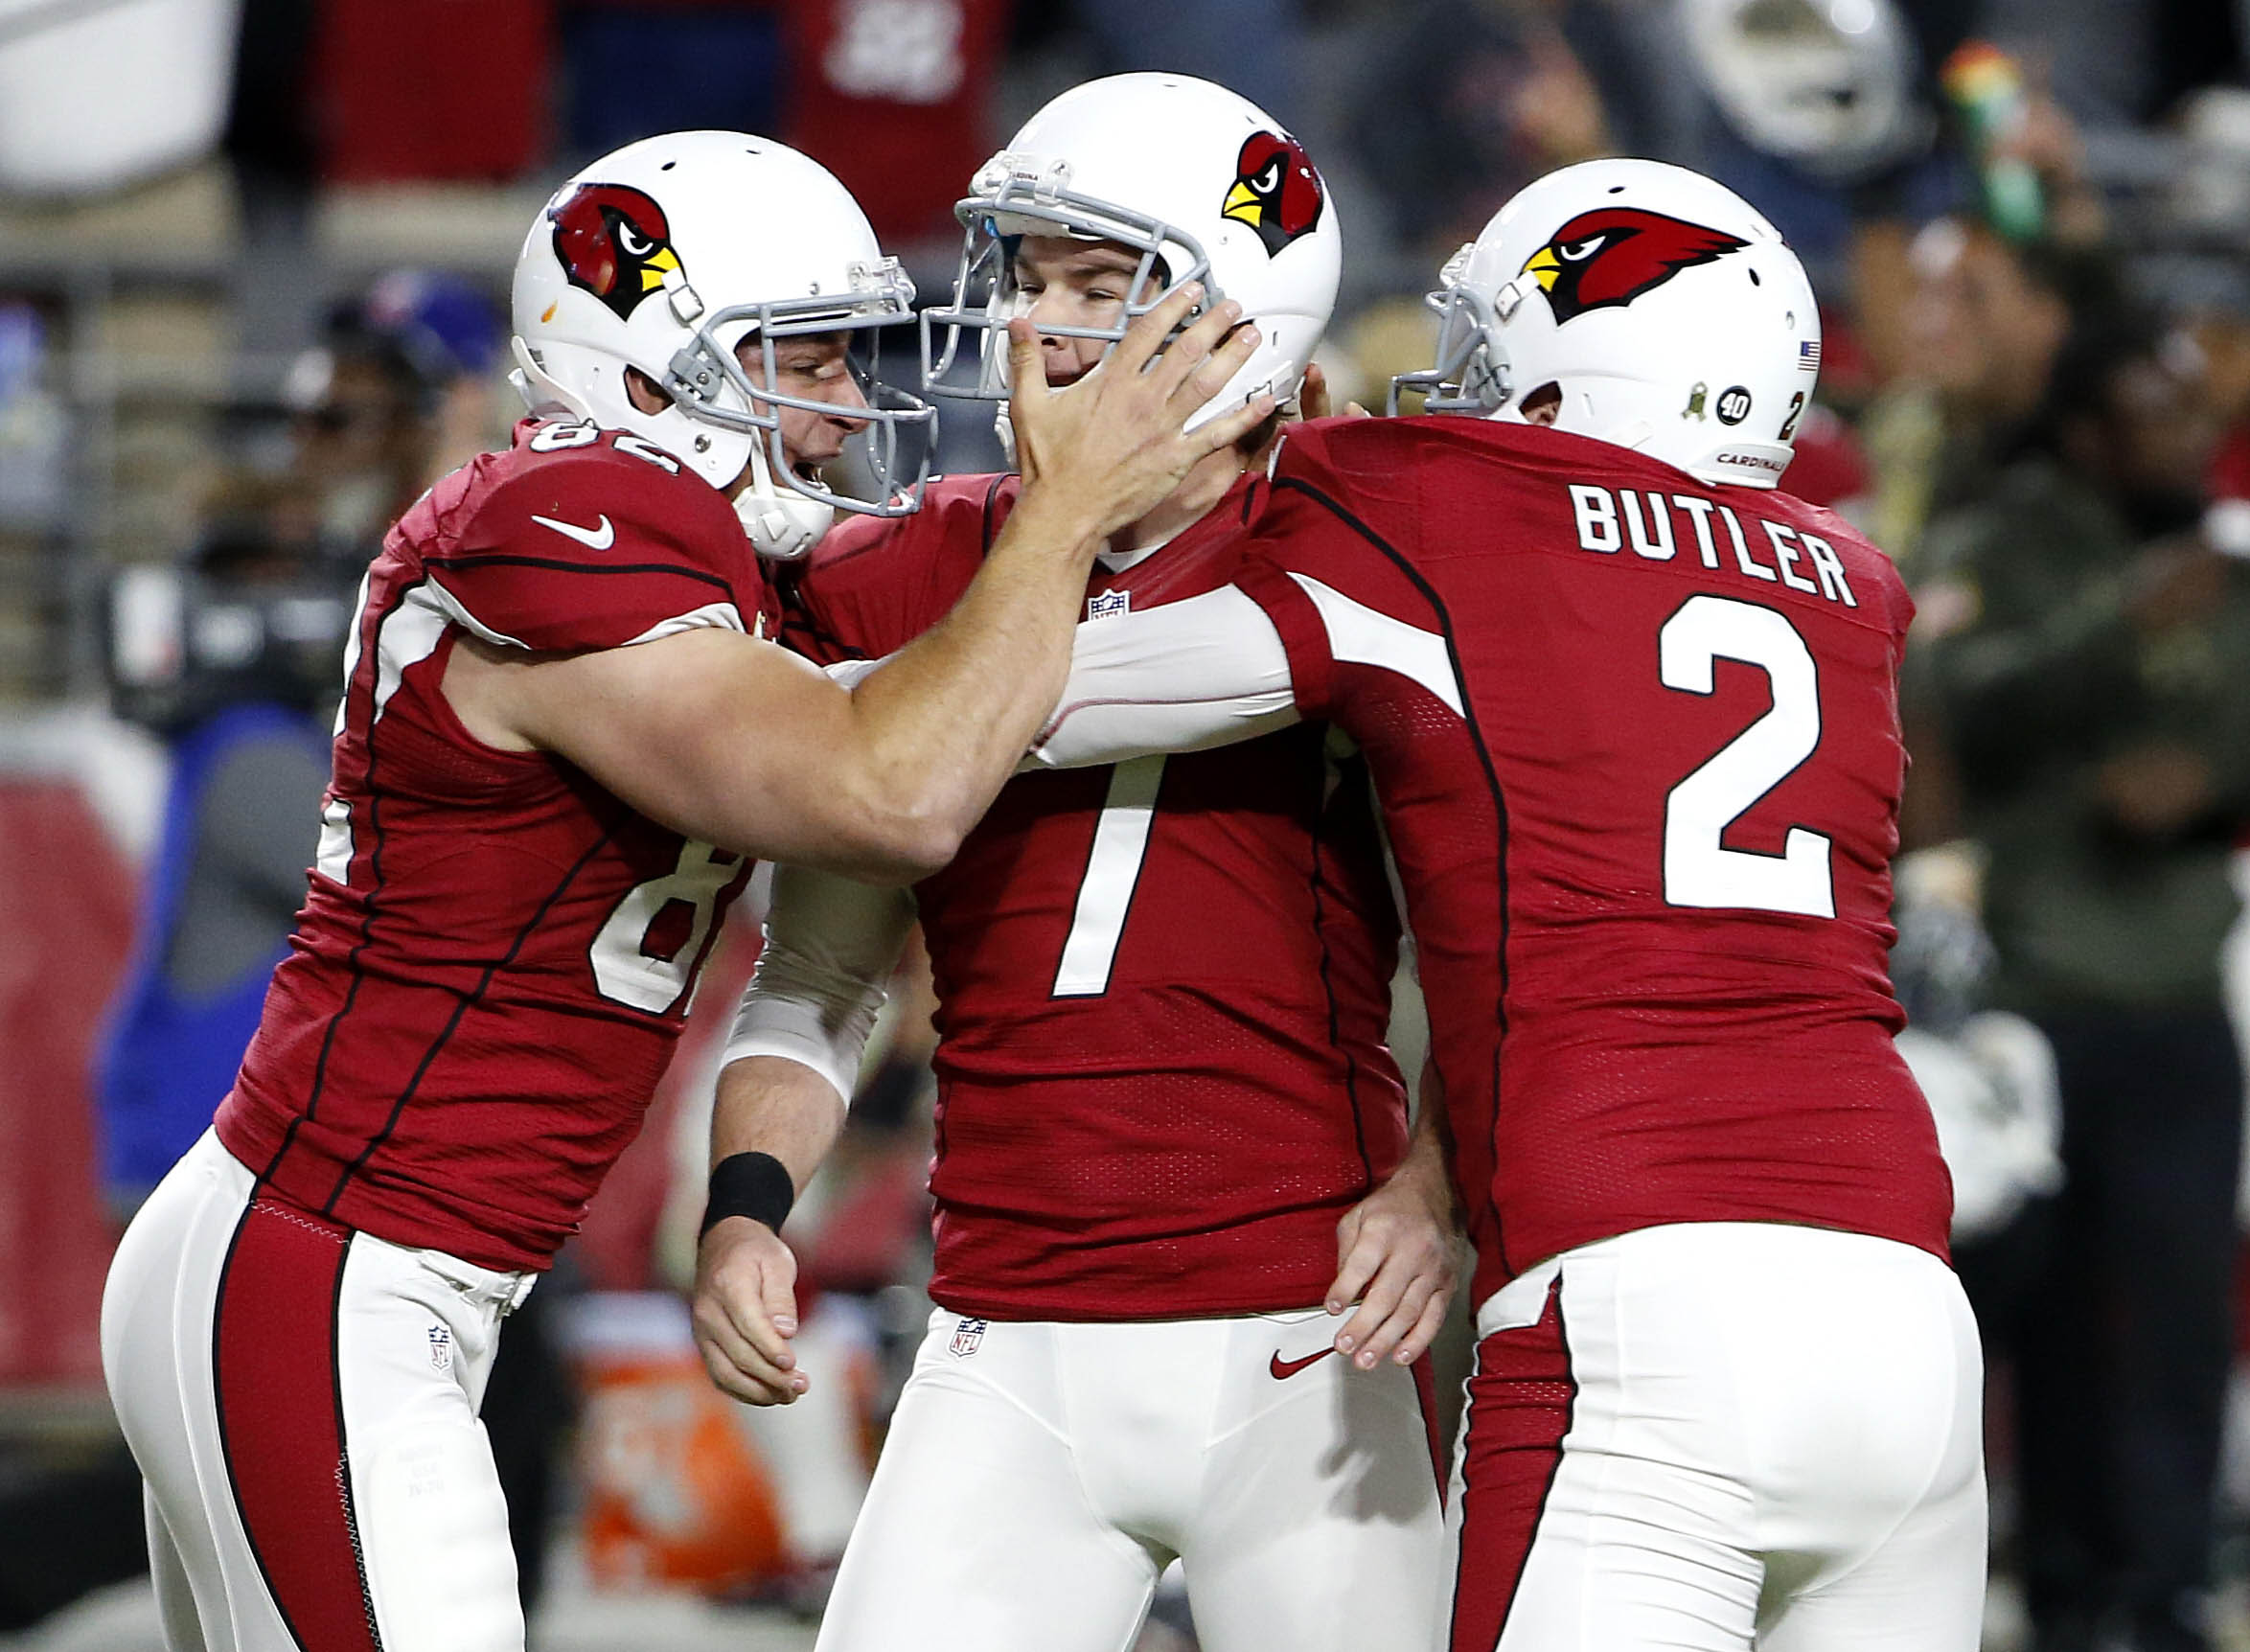 FILE - In this Nov. 22, 2015 file photo, Arizona Cardinals kicker Chandler Catanzaro (7) celebrates his game-winning field goal with punter Drew Butler (2) and snapper Mike Leach (82) against the Cincinnati Bengals during the second half of an NFL footbal